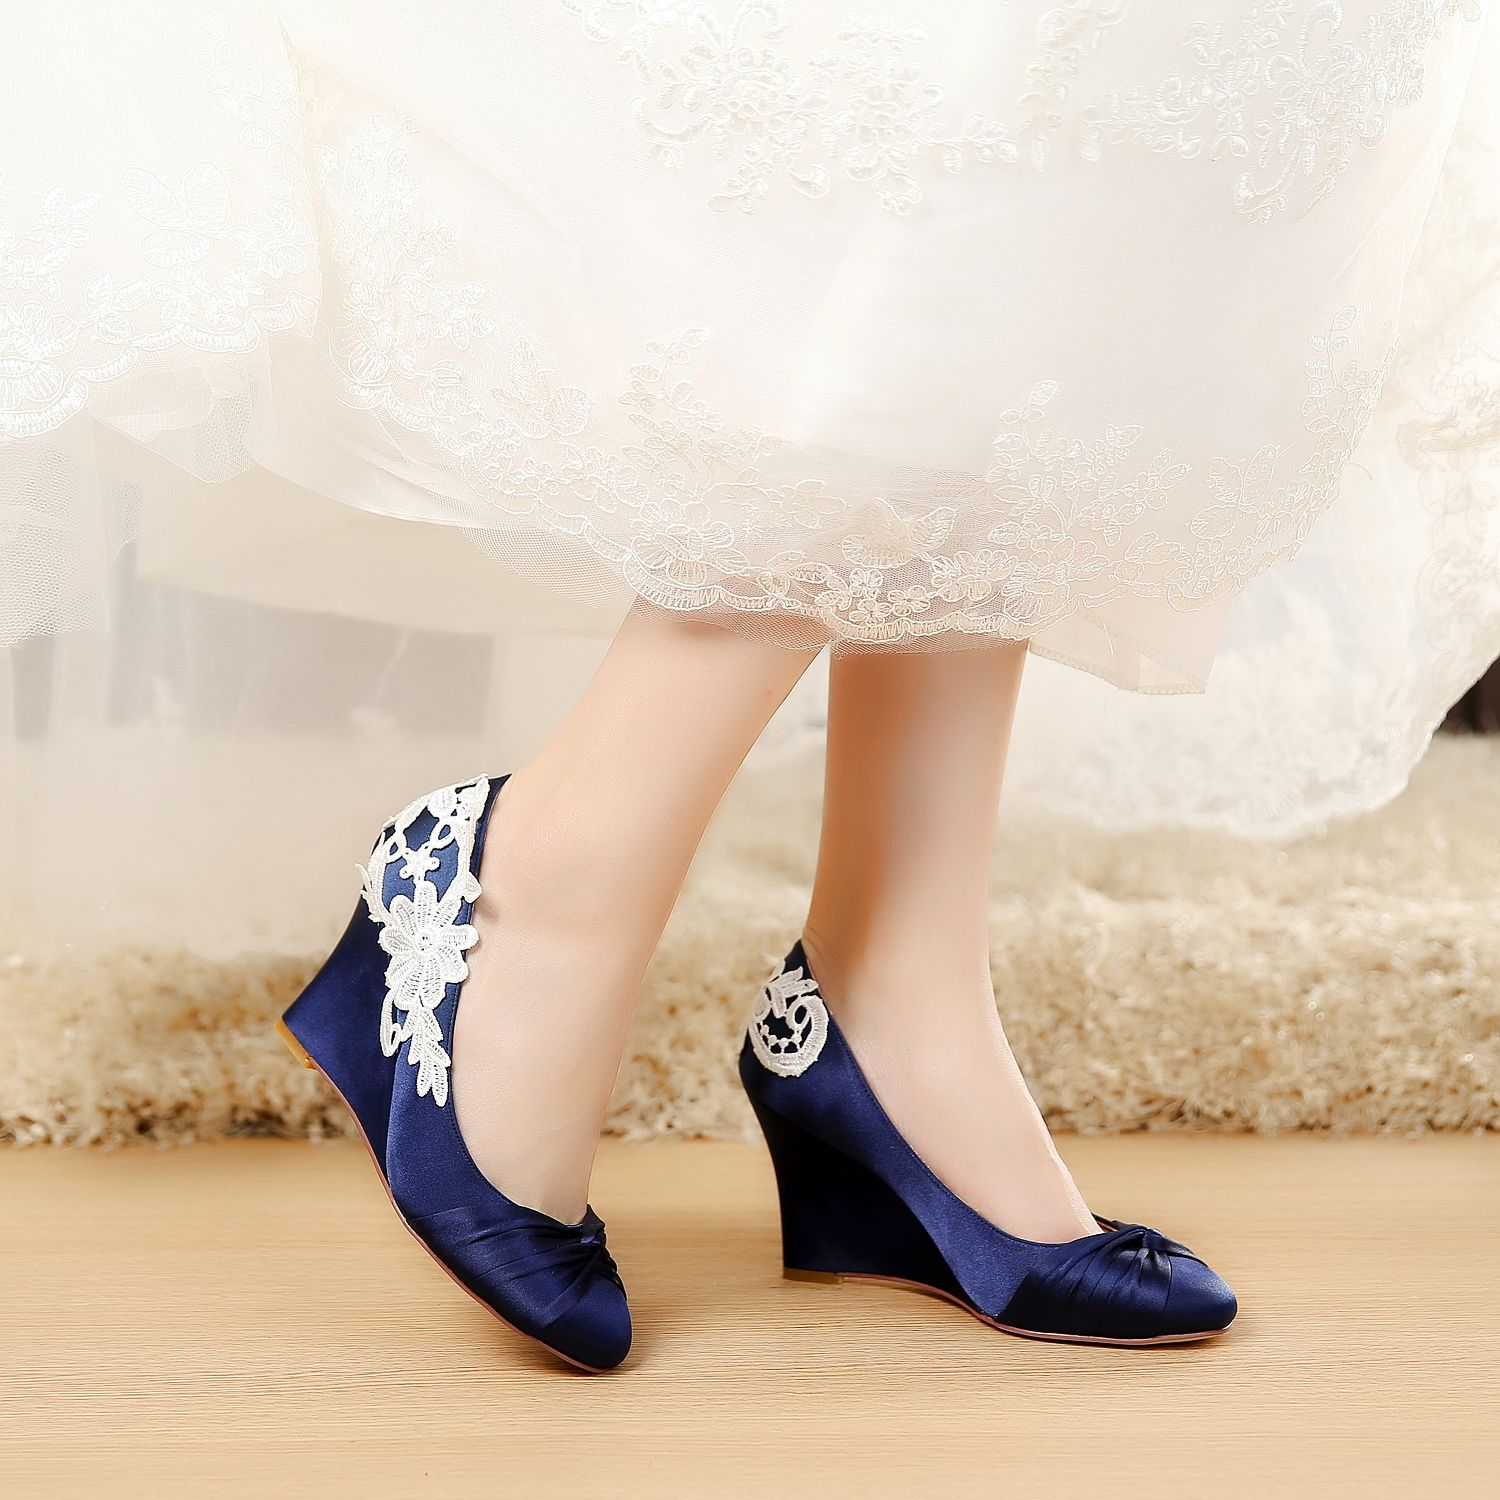 comforter comfortable for wedding beach com wedges design images aesthetic wedge bride aiboulder shoes www